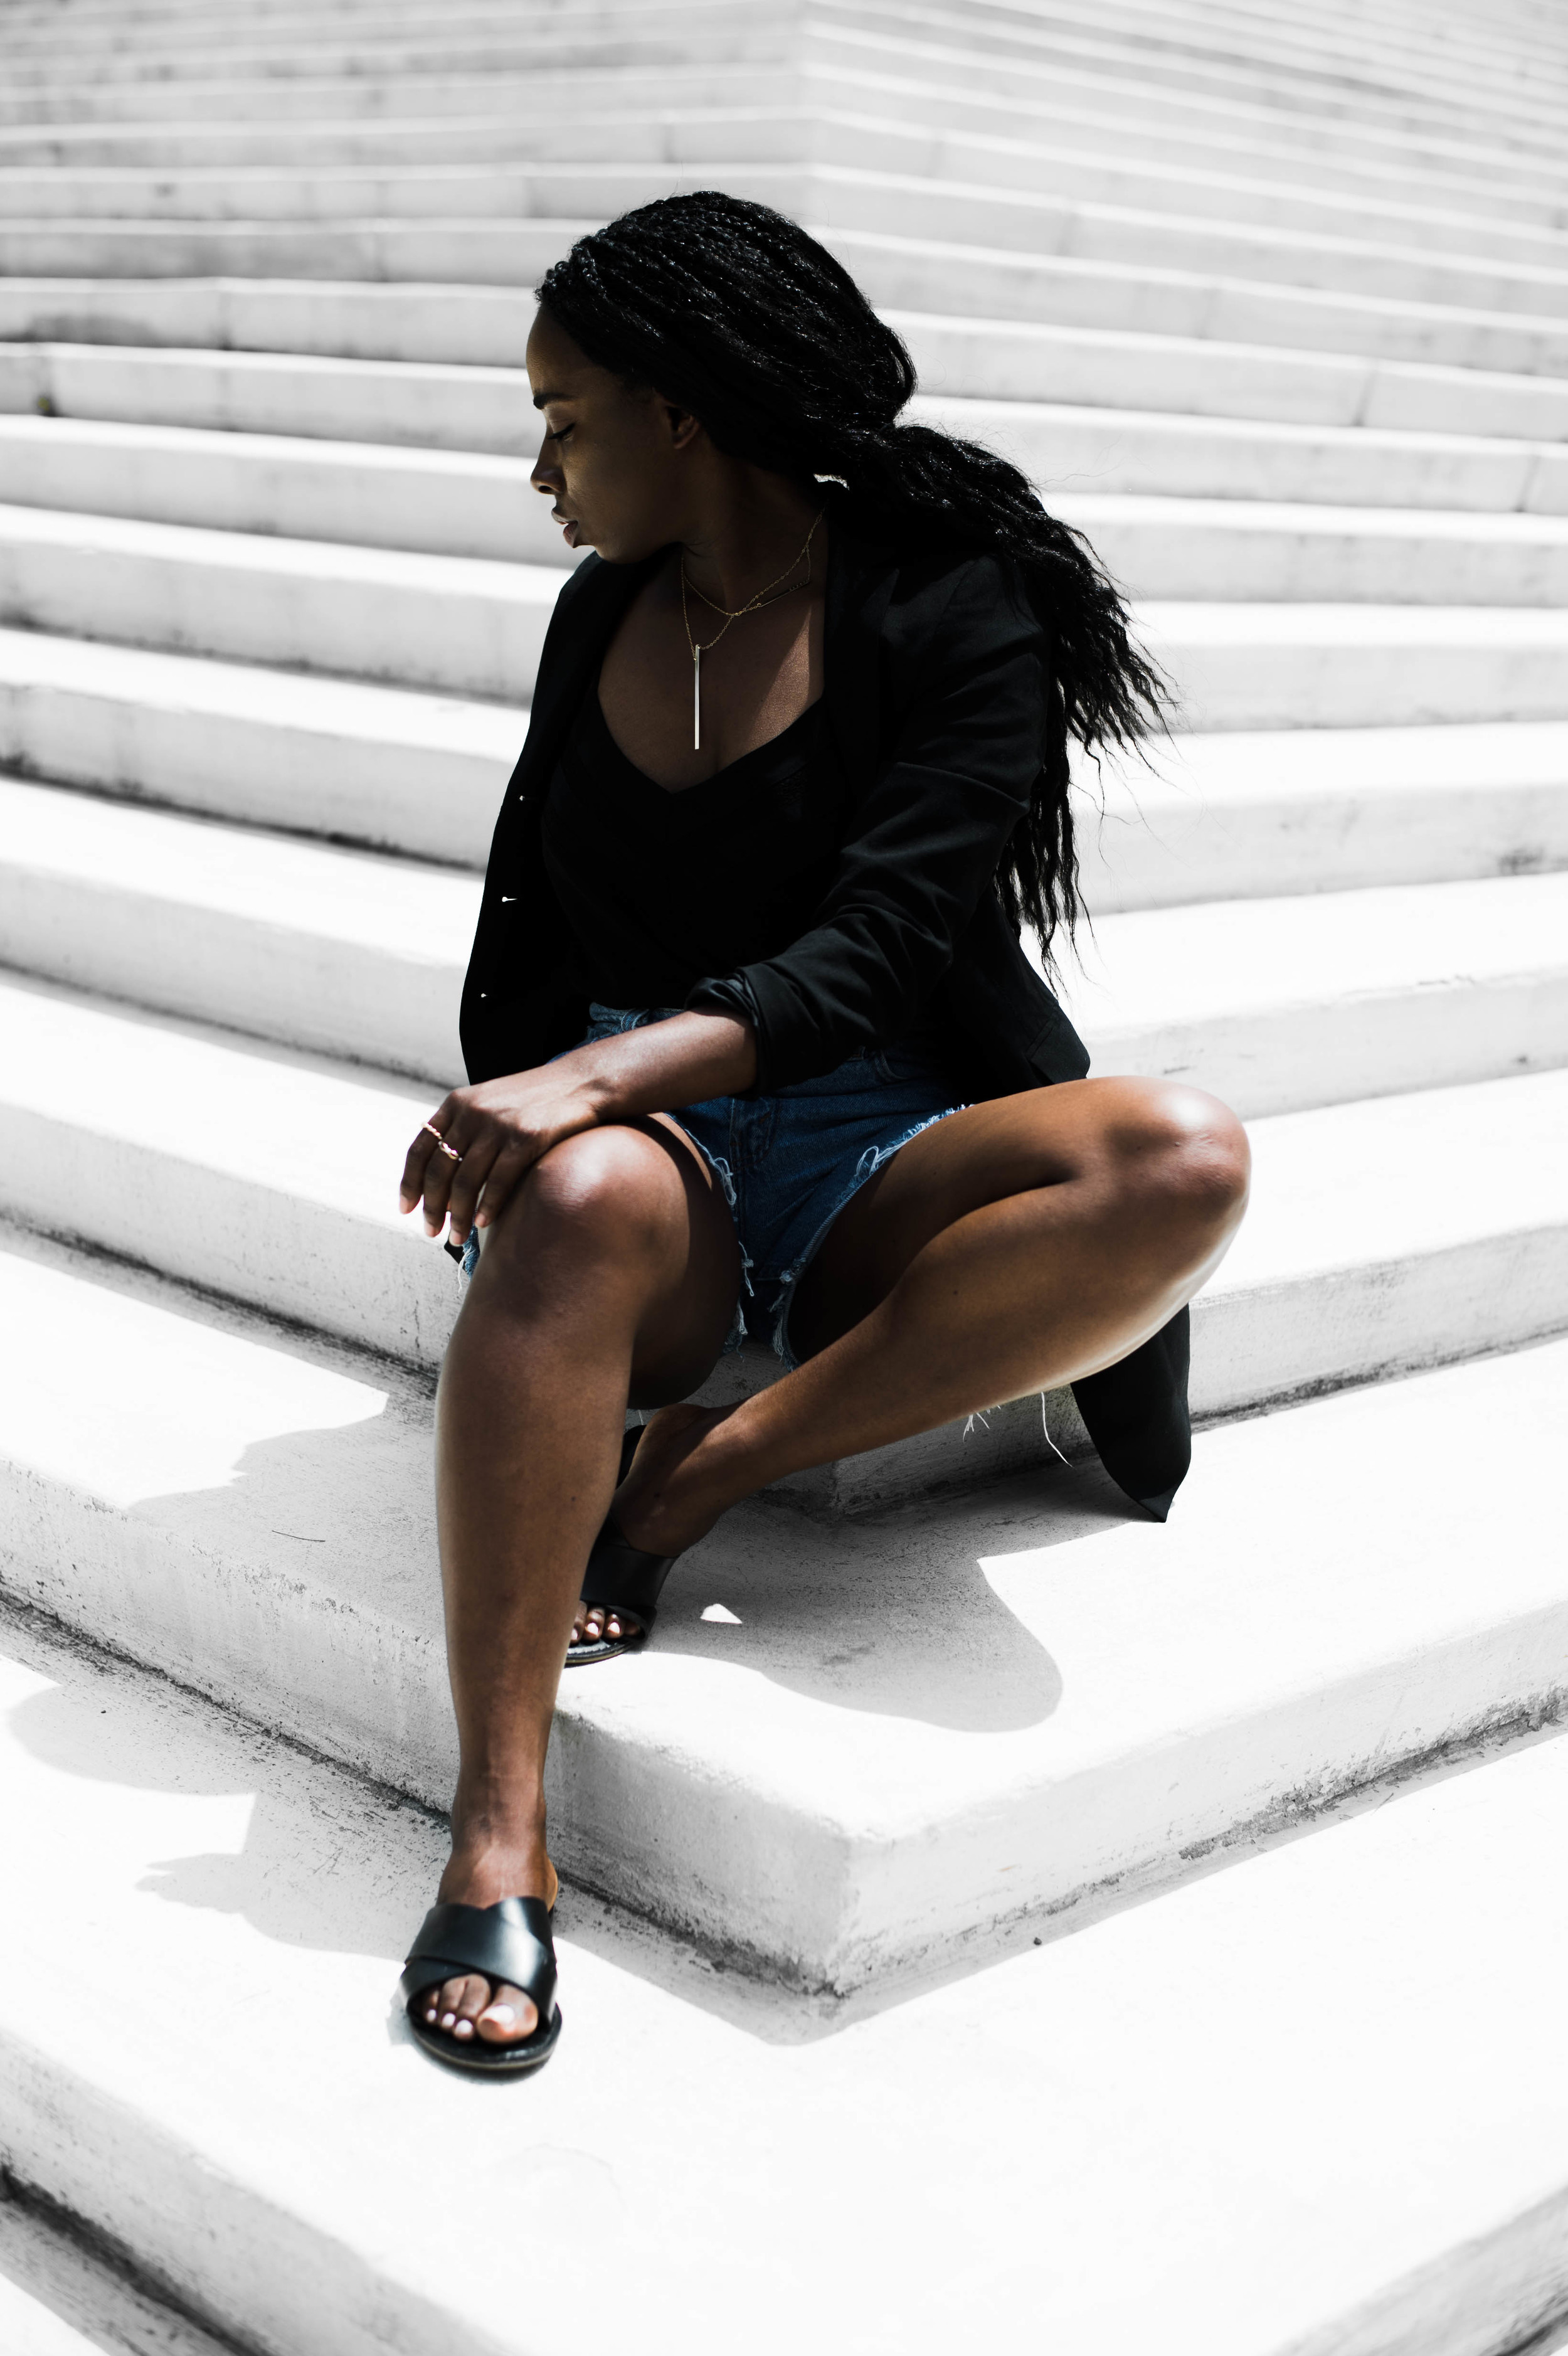 The-Glossier-Tasha-James-All-Black-Denim-Shorts-Fashion-Blogger-DC-Summer-2016-Blazer-Denim-6.jpg